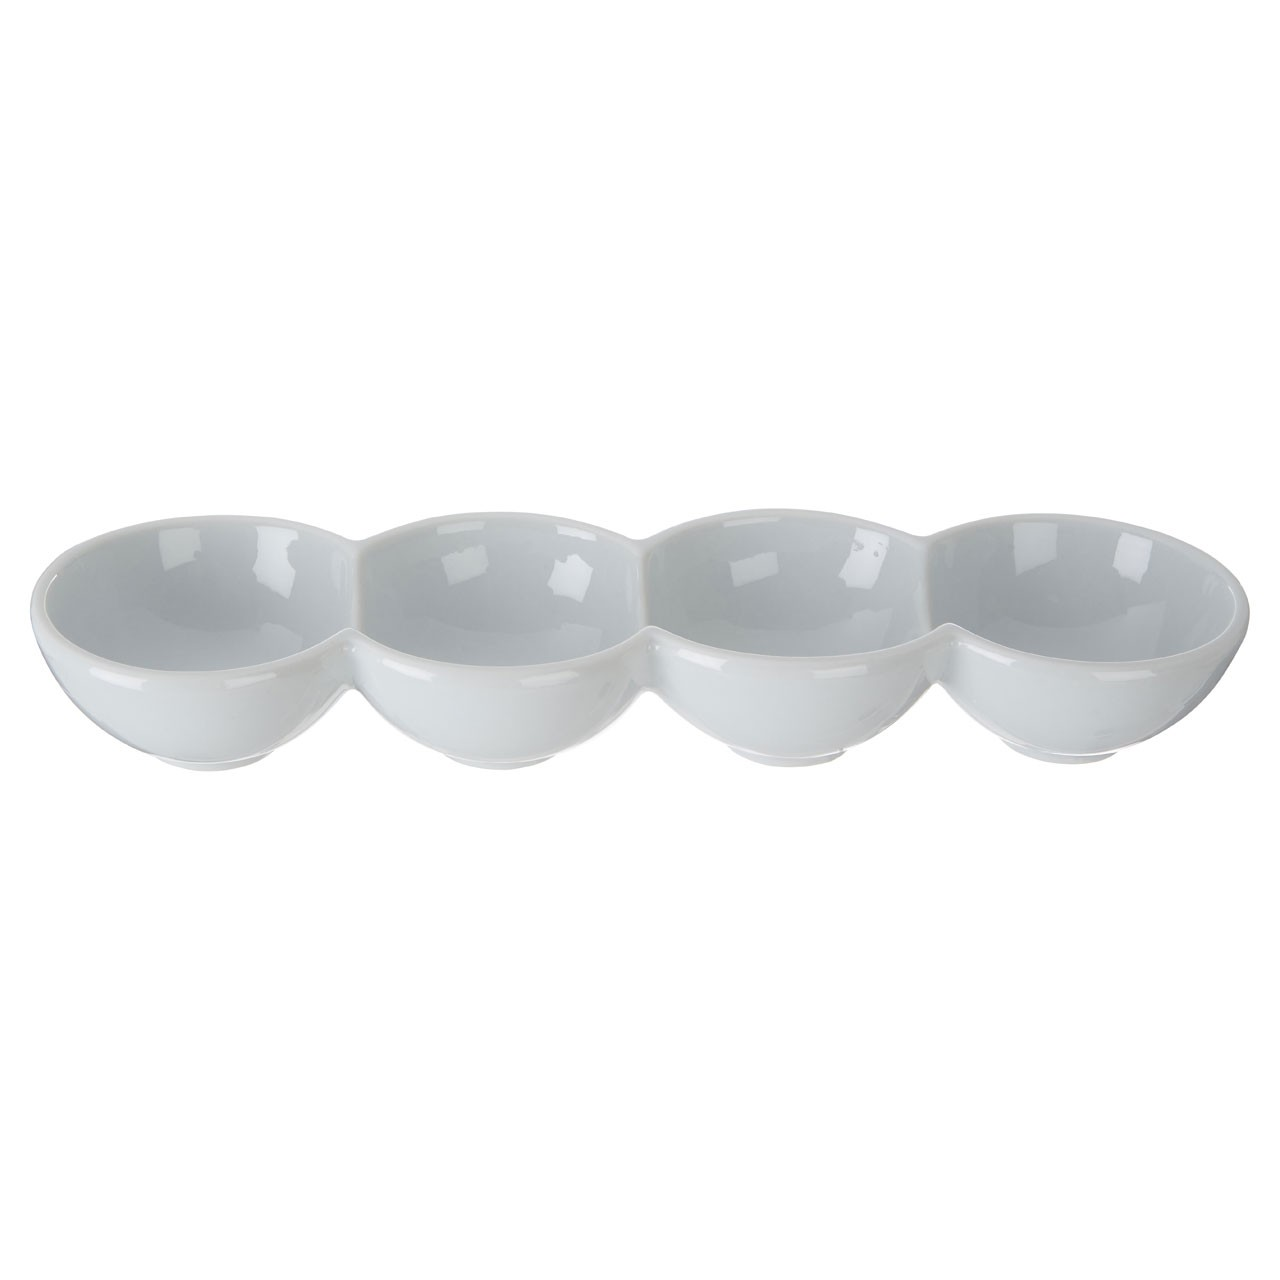 4 Section Snack Dish - White Porcelain